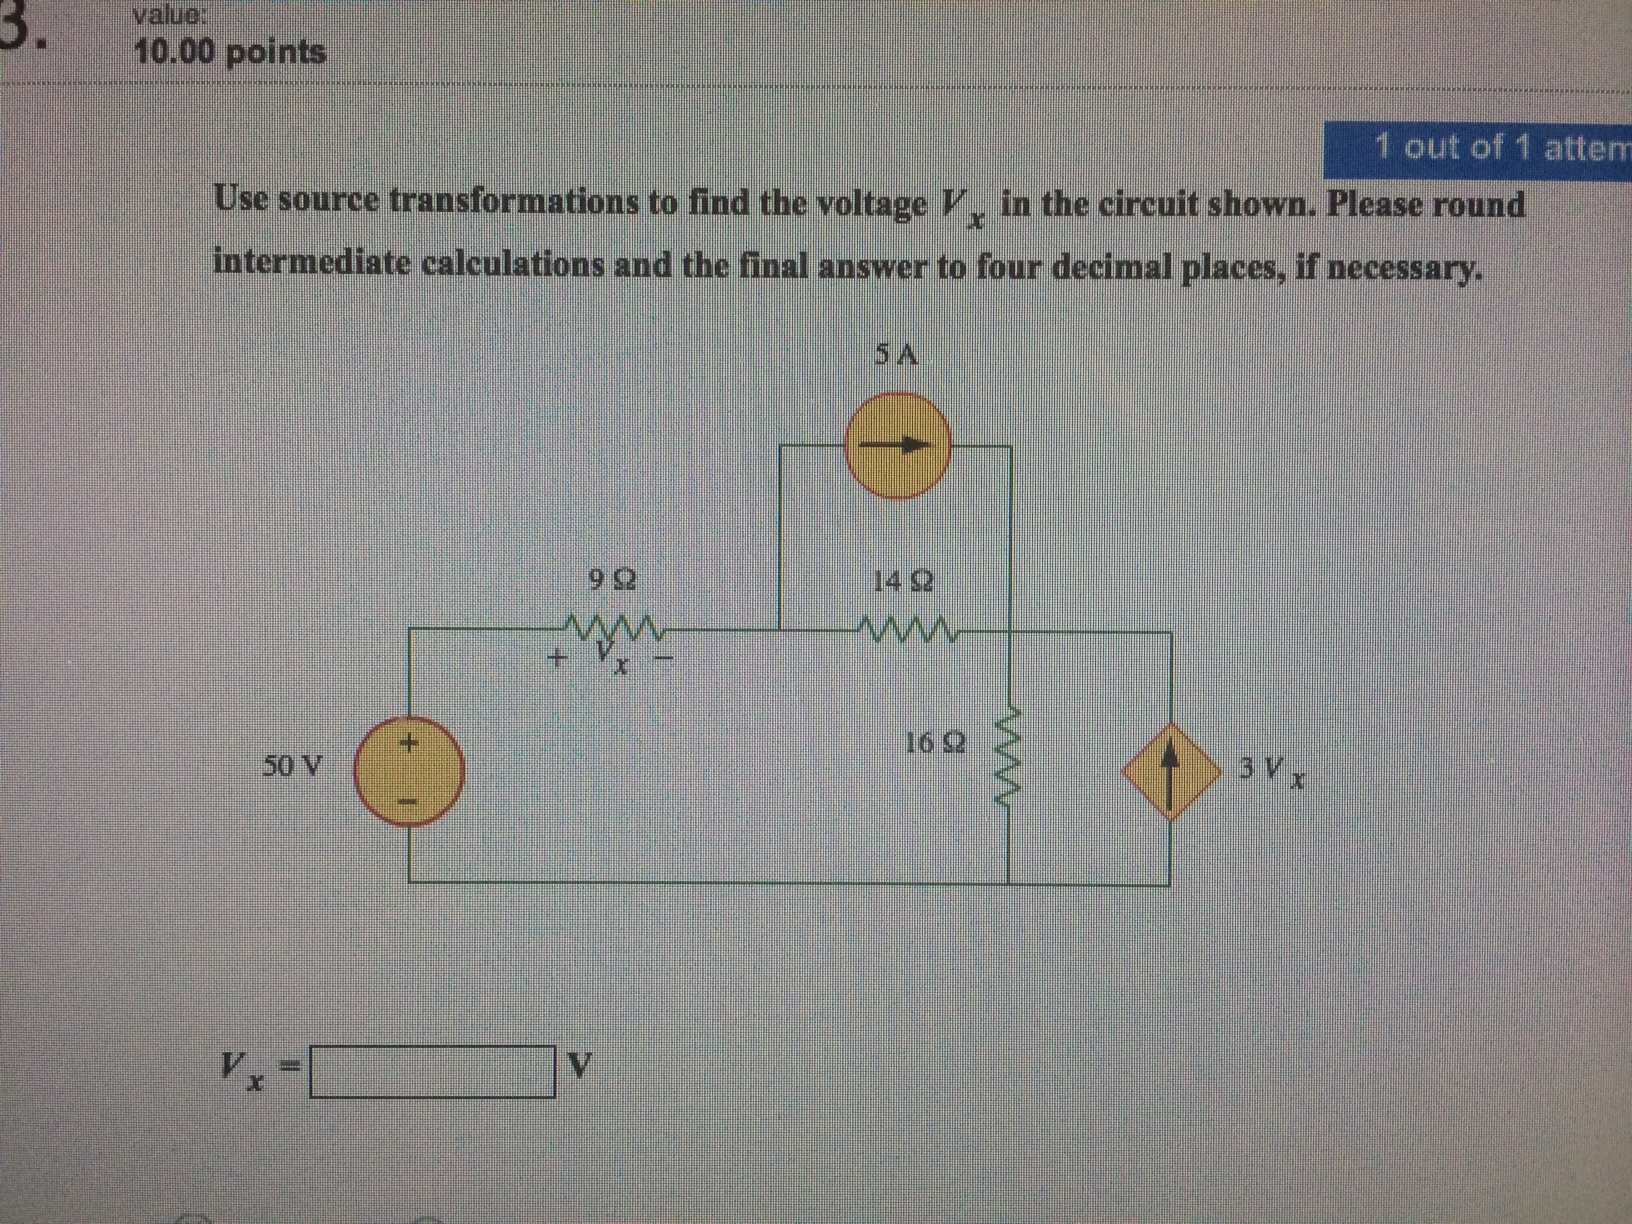 Use sources transformations to find the voltage V